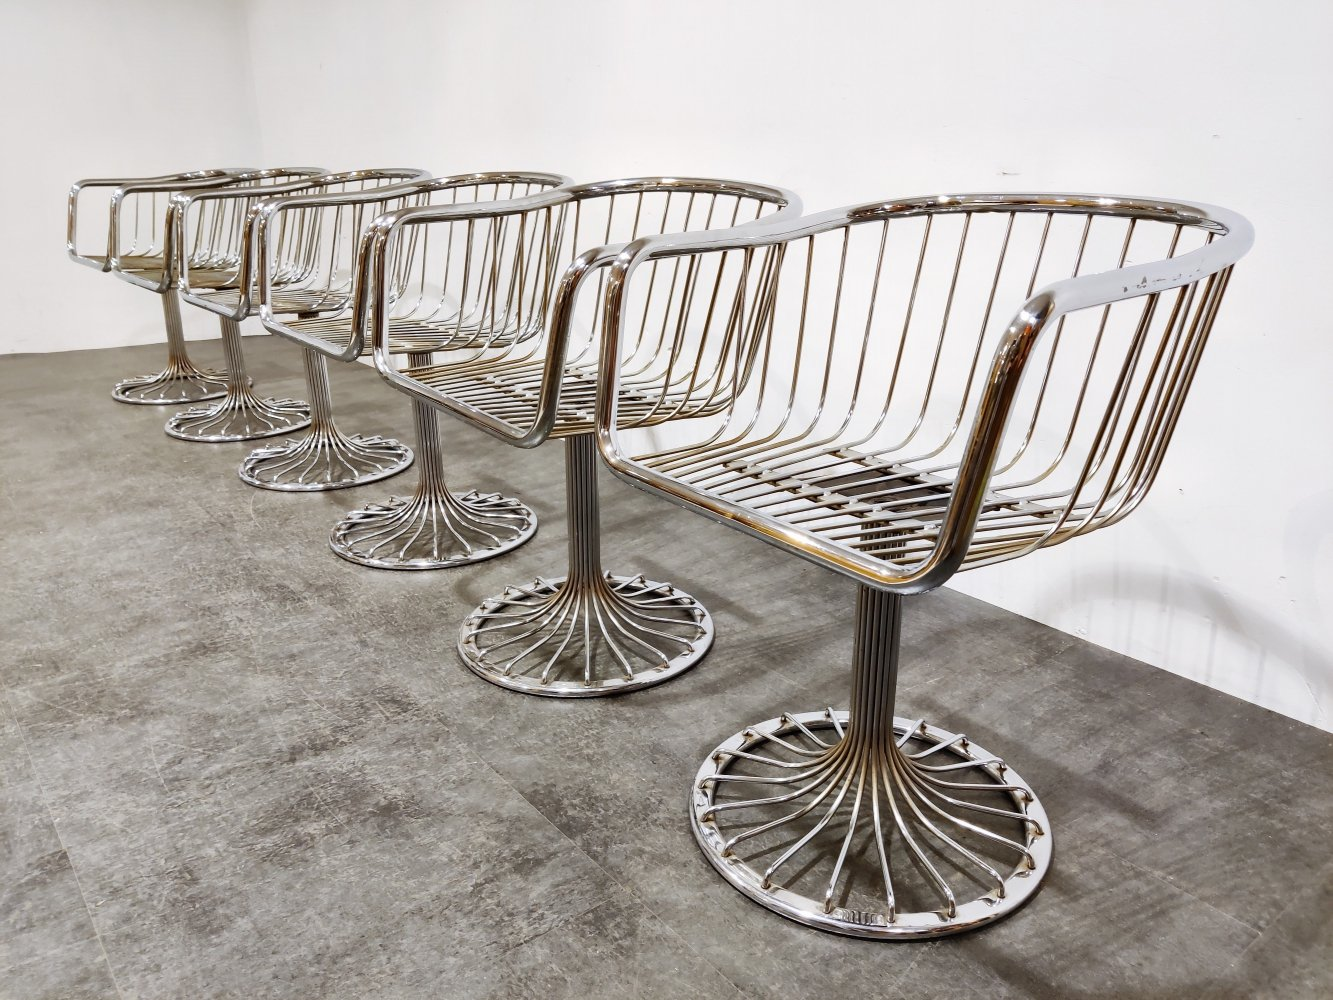 Set of 6 Vintage chrome wire swivel chairs, 1970s